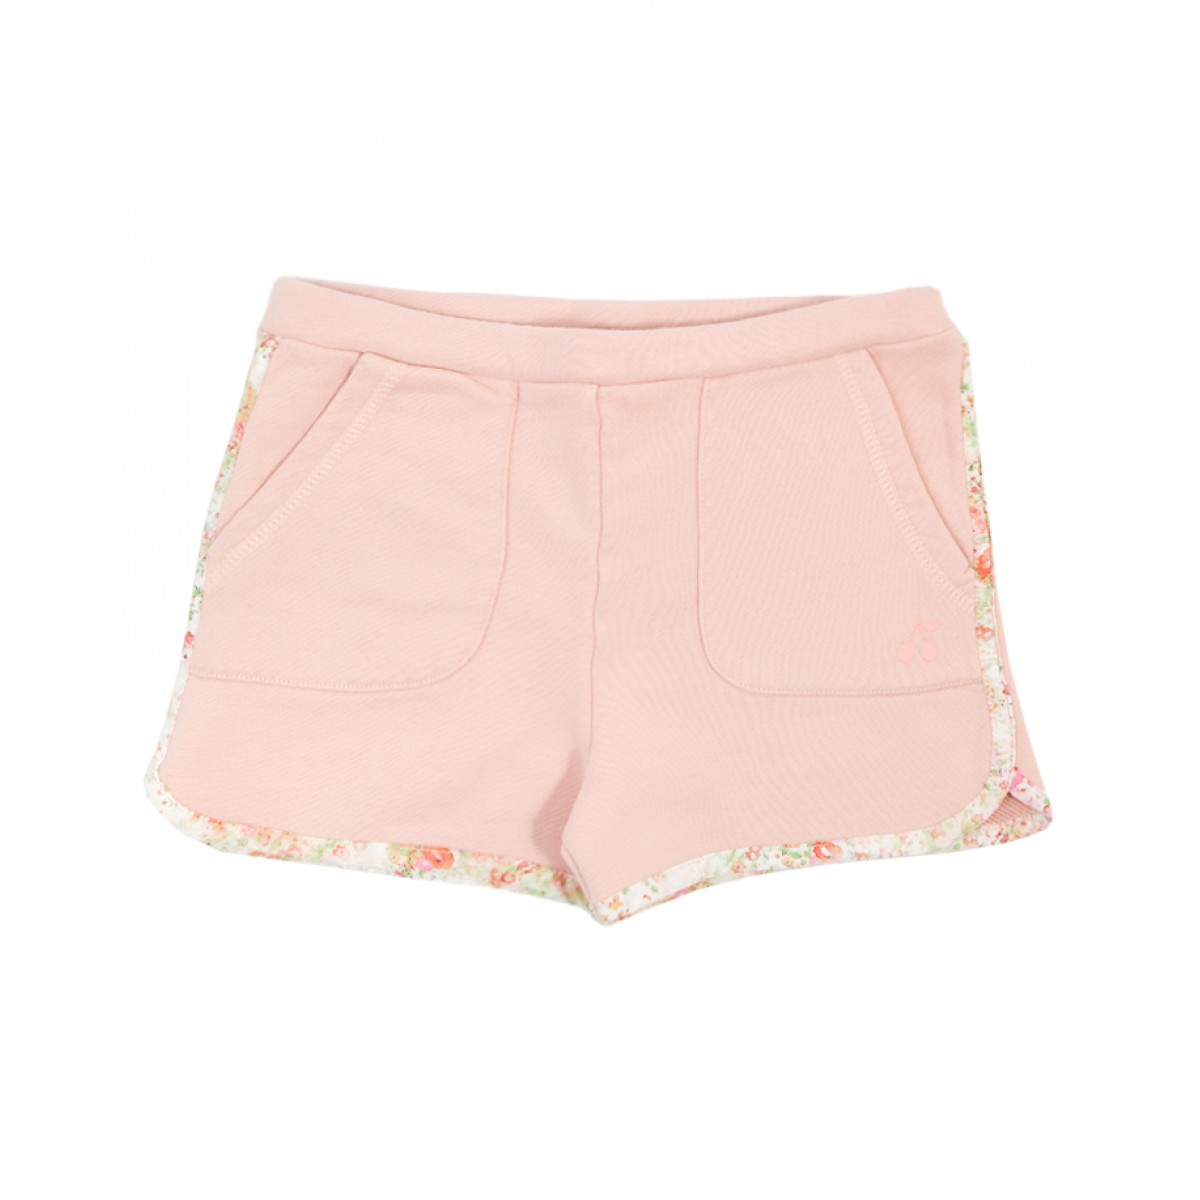 BONPOINT Shorts with floral motif details